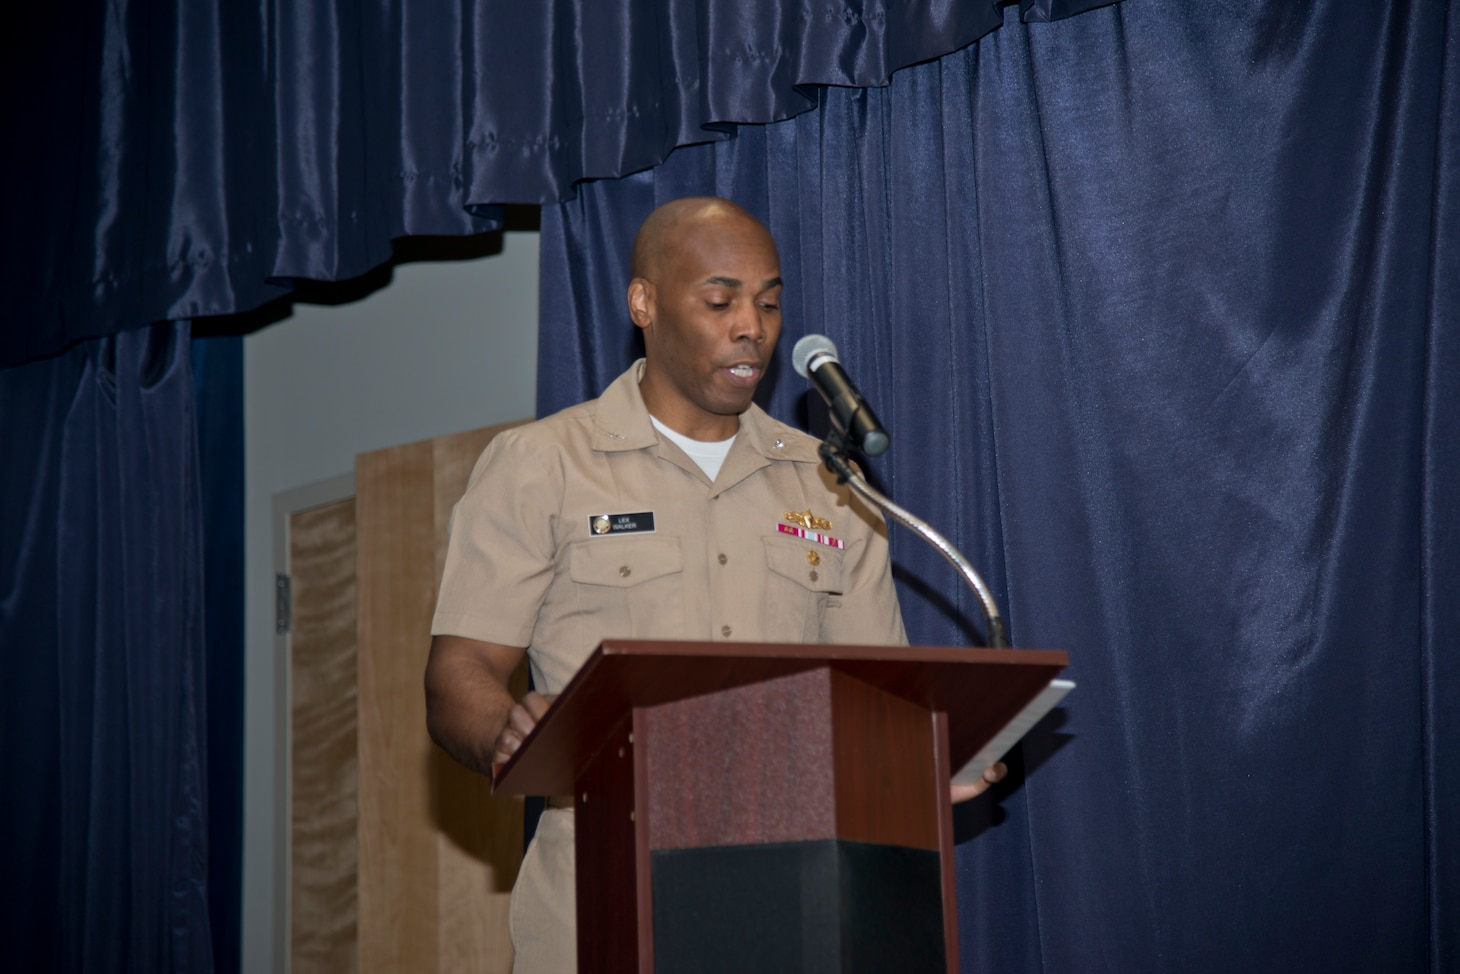 NEWPORT, R.I. (April 22, 2021) Capt. Alexis Walker, prospective commanding officer, Surface Warfare Schools Command (SWSC), reads his orders during the SWSC change of command ceremony at Naval Station (NAVSTA) Newport R.I., April 22, 2021. During the ceremony, Walker relieved Capt. Christopher Alexander as SWSC's commanding officer. (U.S. Navy photo by Mass Communication Specialist 2nd Class Derien C. Luce)